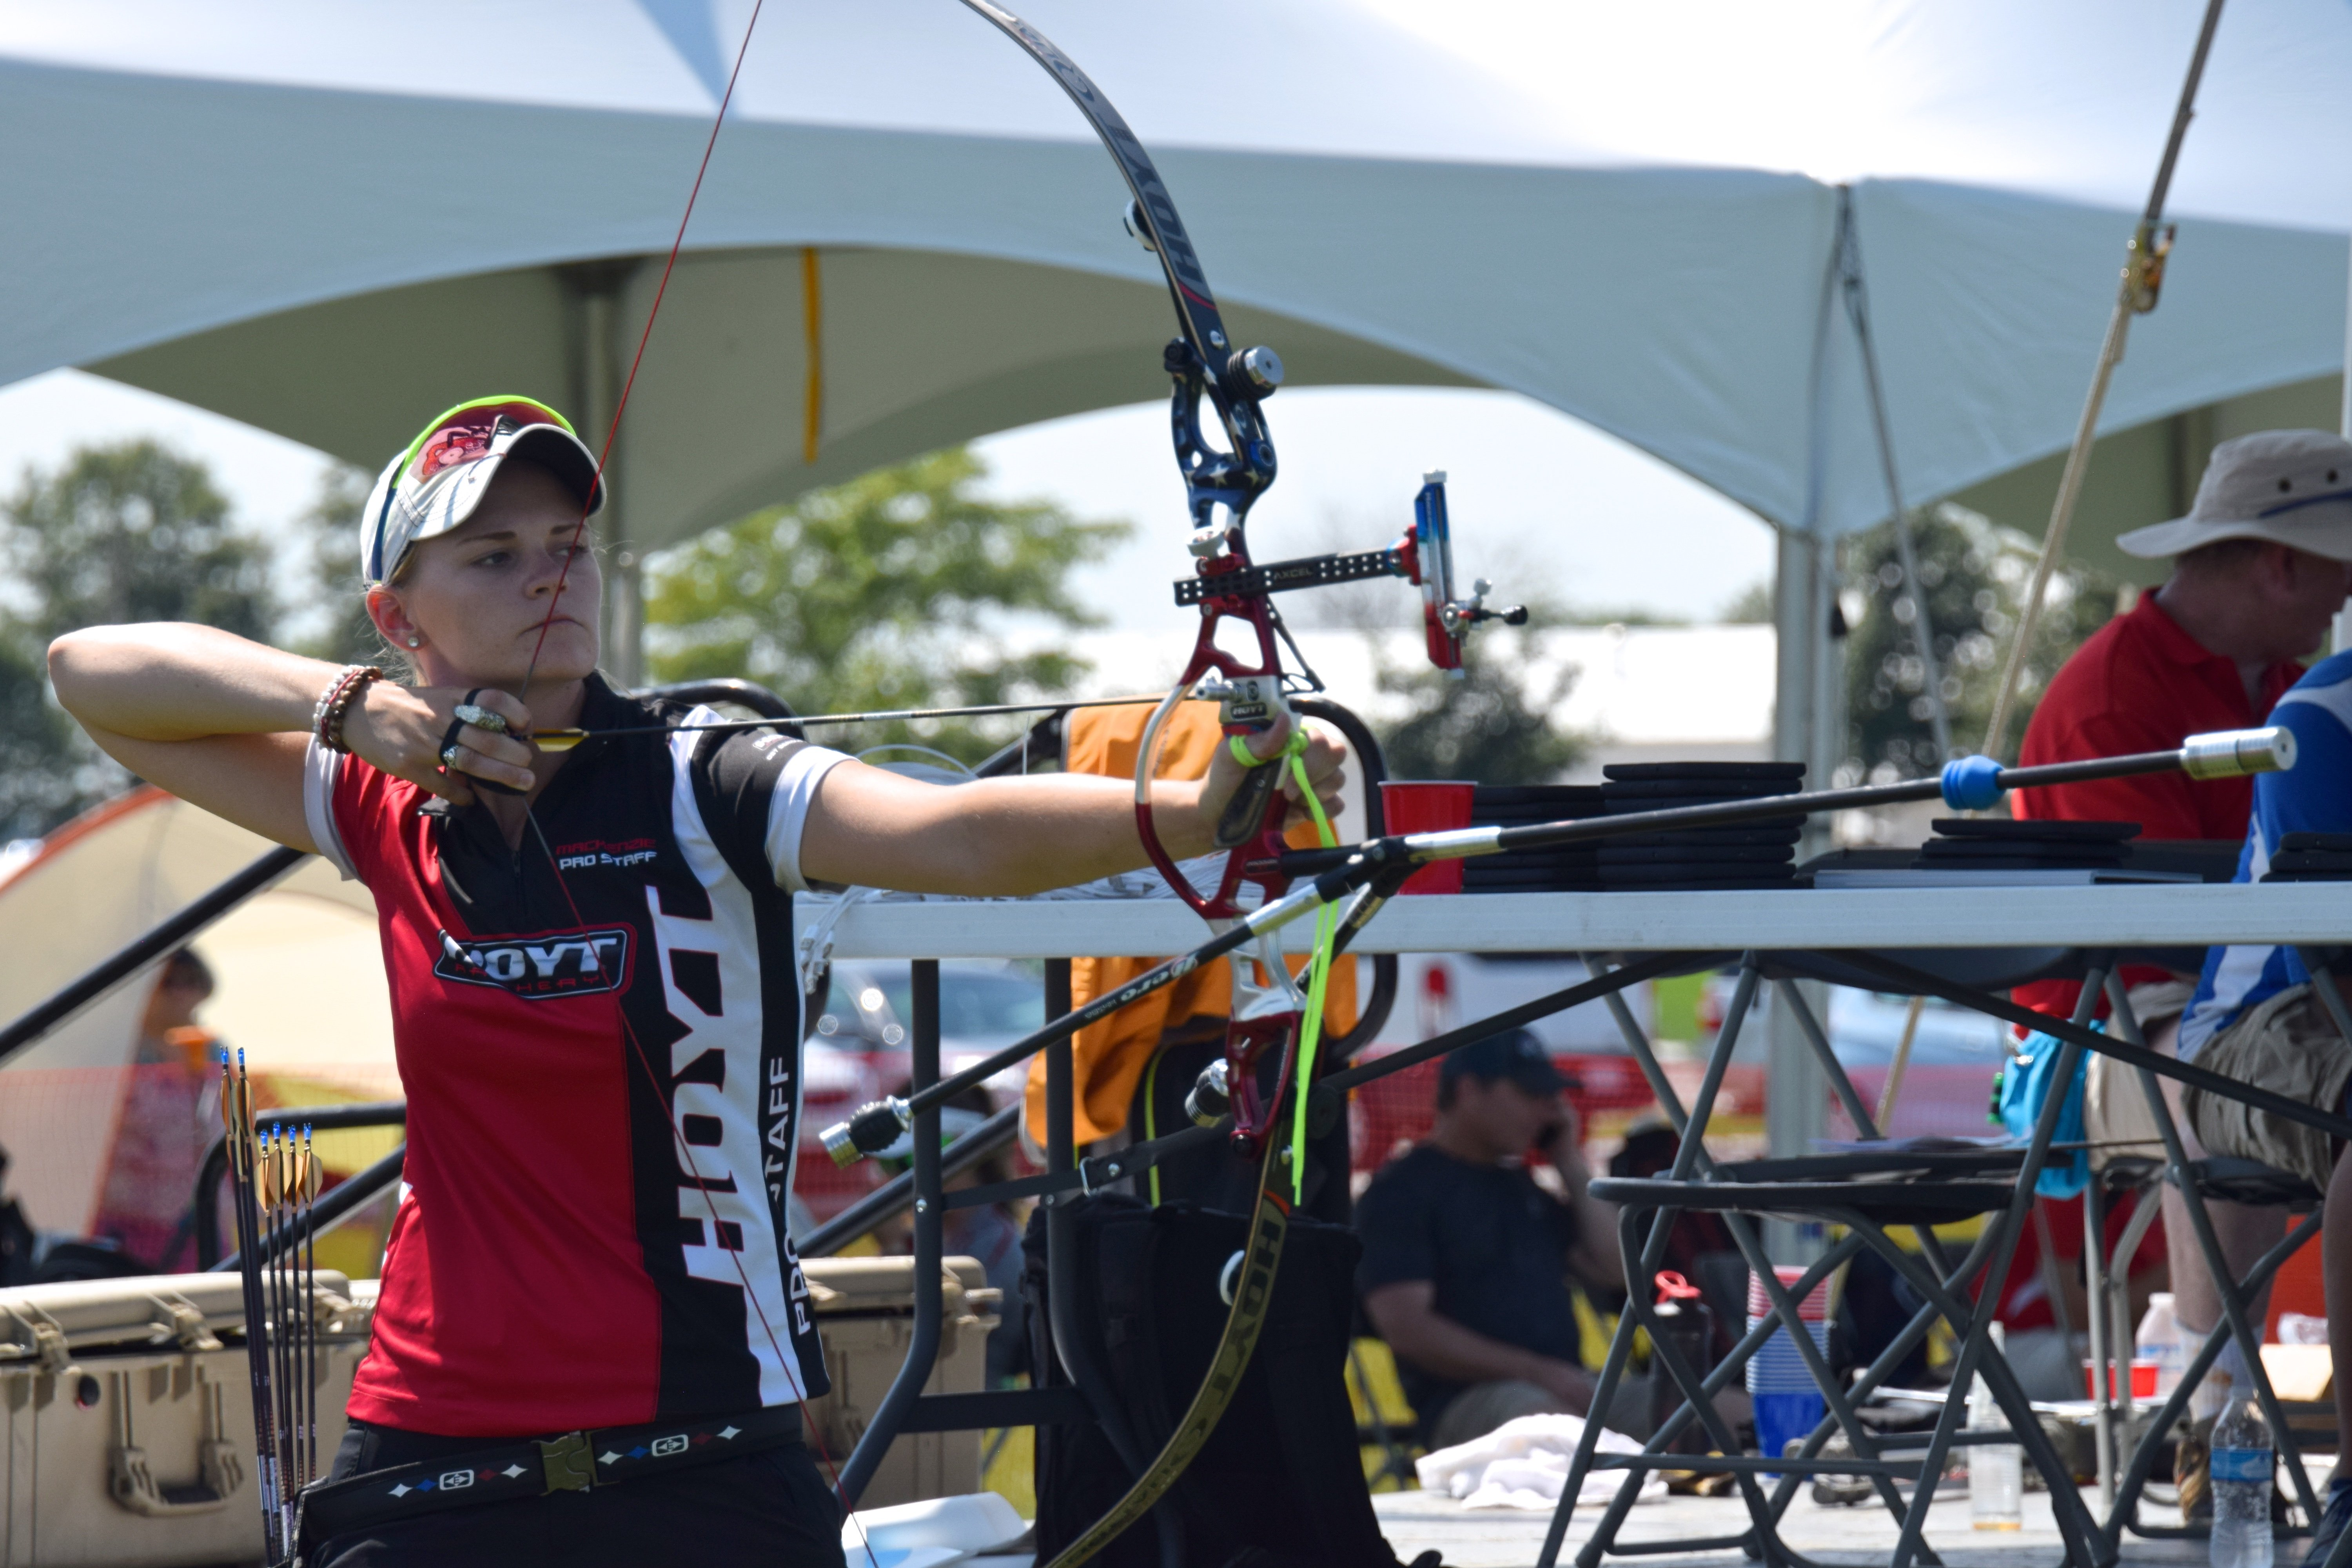 Dublin Life Magazine Dublin Life August 2018 Dublin Life September 2018 U S National Target Championships And U S Open U S National Archery Team Cityscene Magazine The song is about fighting for emotional real estate when love and substance abuse. cityscene magazine